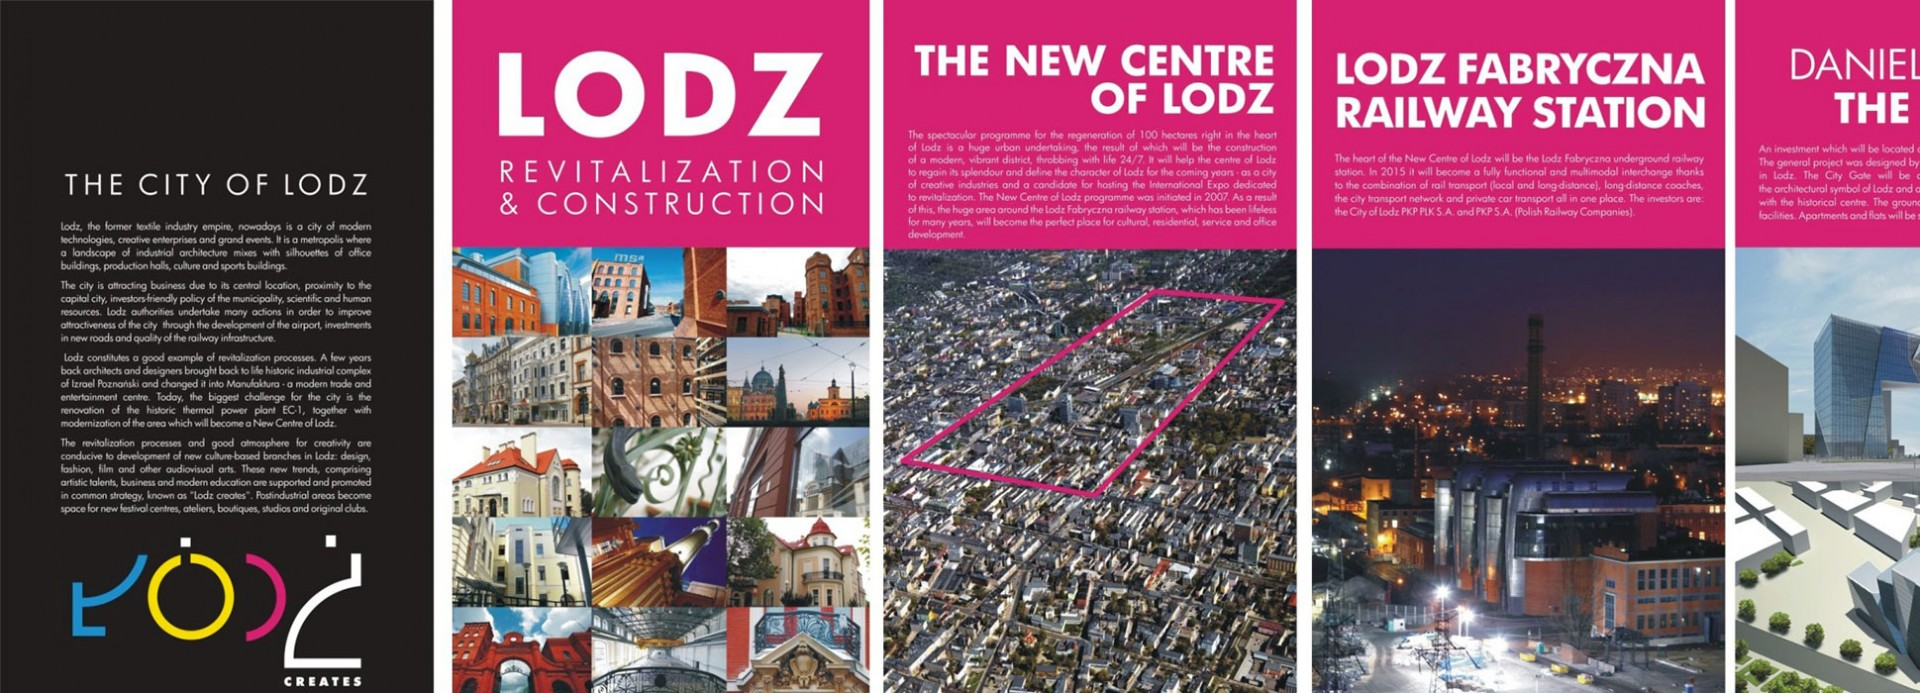 Exhibition: LODZ. Revitalization and construction